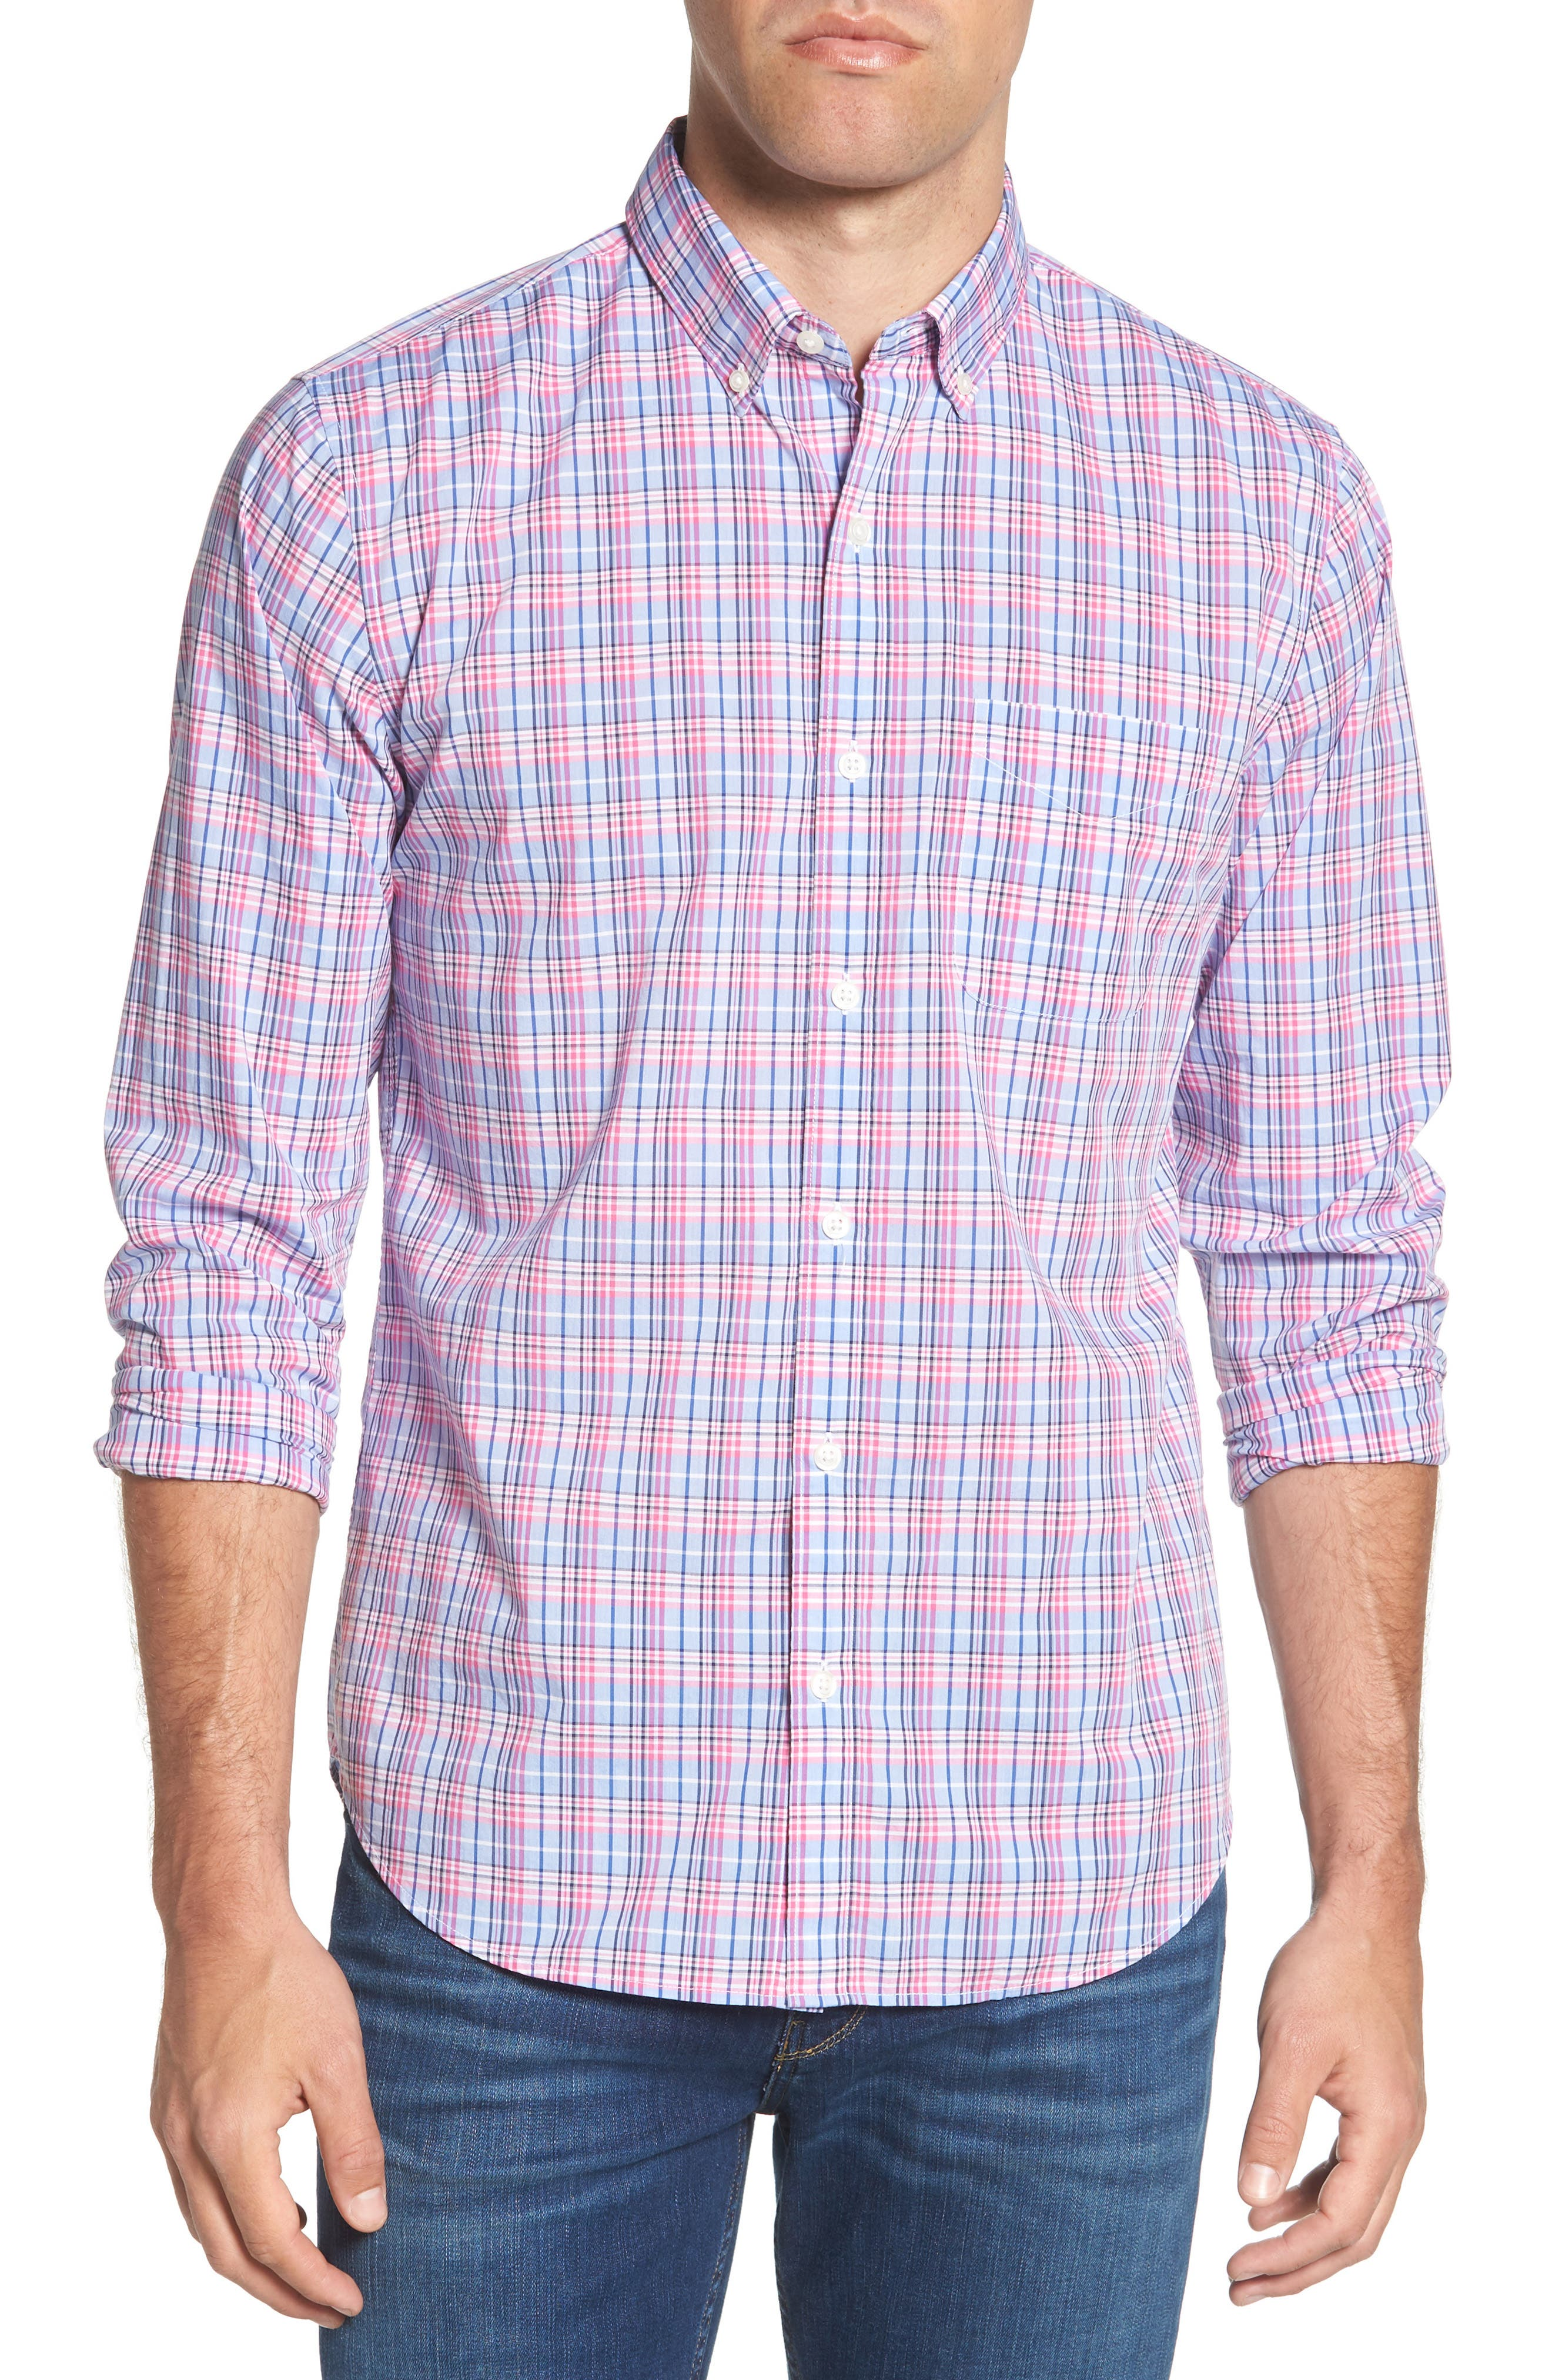 Summerweight Slim Fit Plaid Sport Shirt,                             Main thumbnail 1, color,                             Basswood Plaid - Pink Rocket